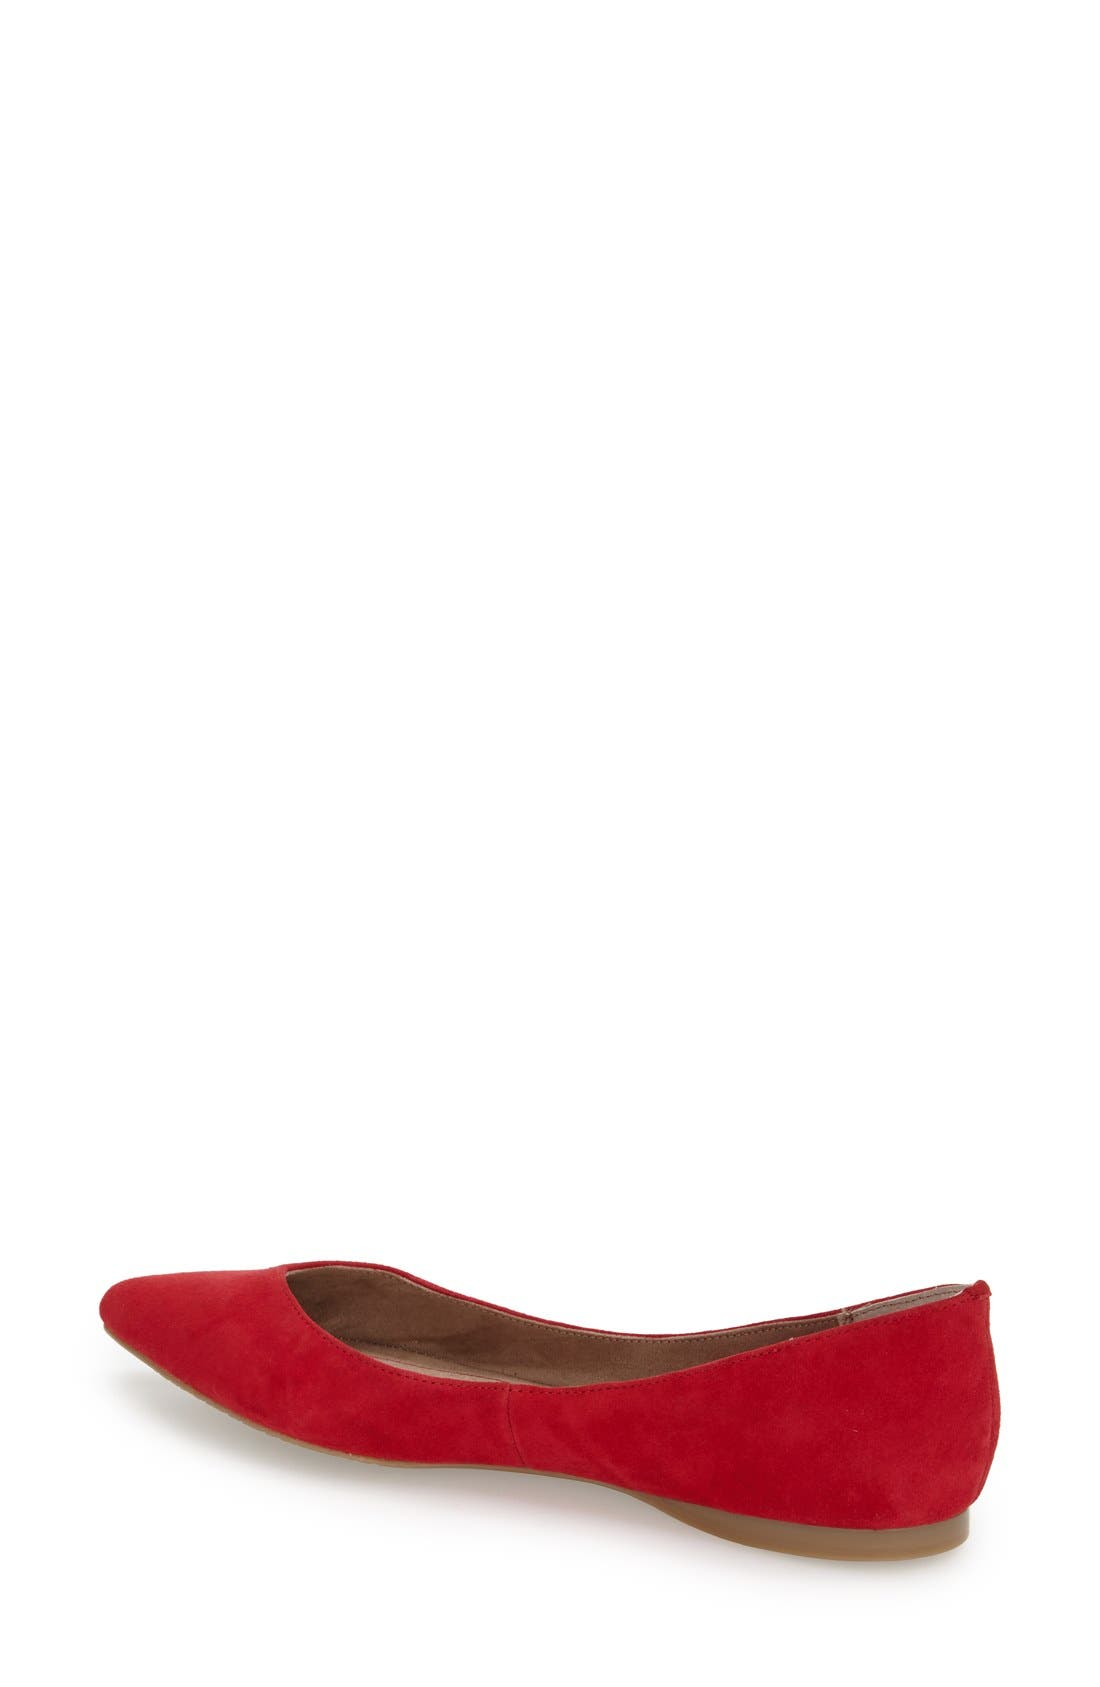 'Moveover' Pointy Toe Leather Flat,                             Alternate thumbnail 3, color,                             Red Suede